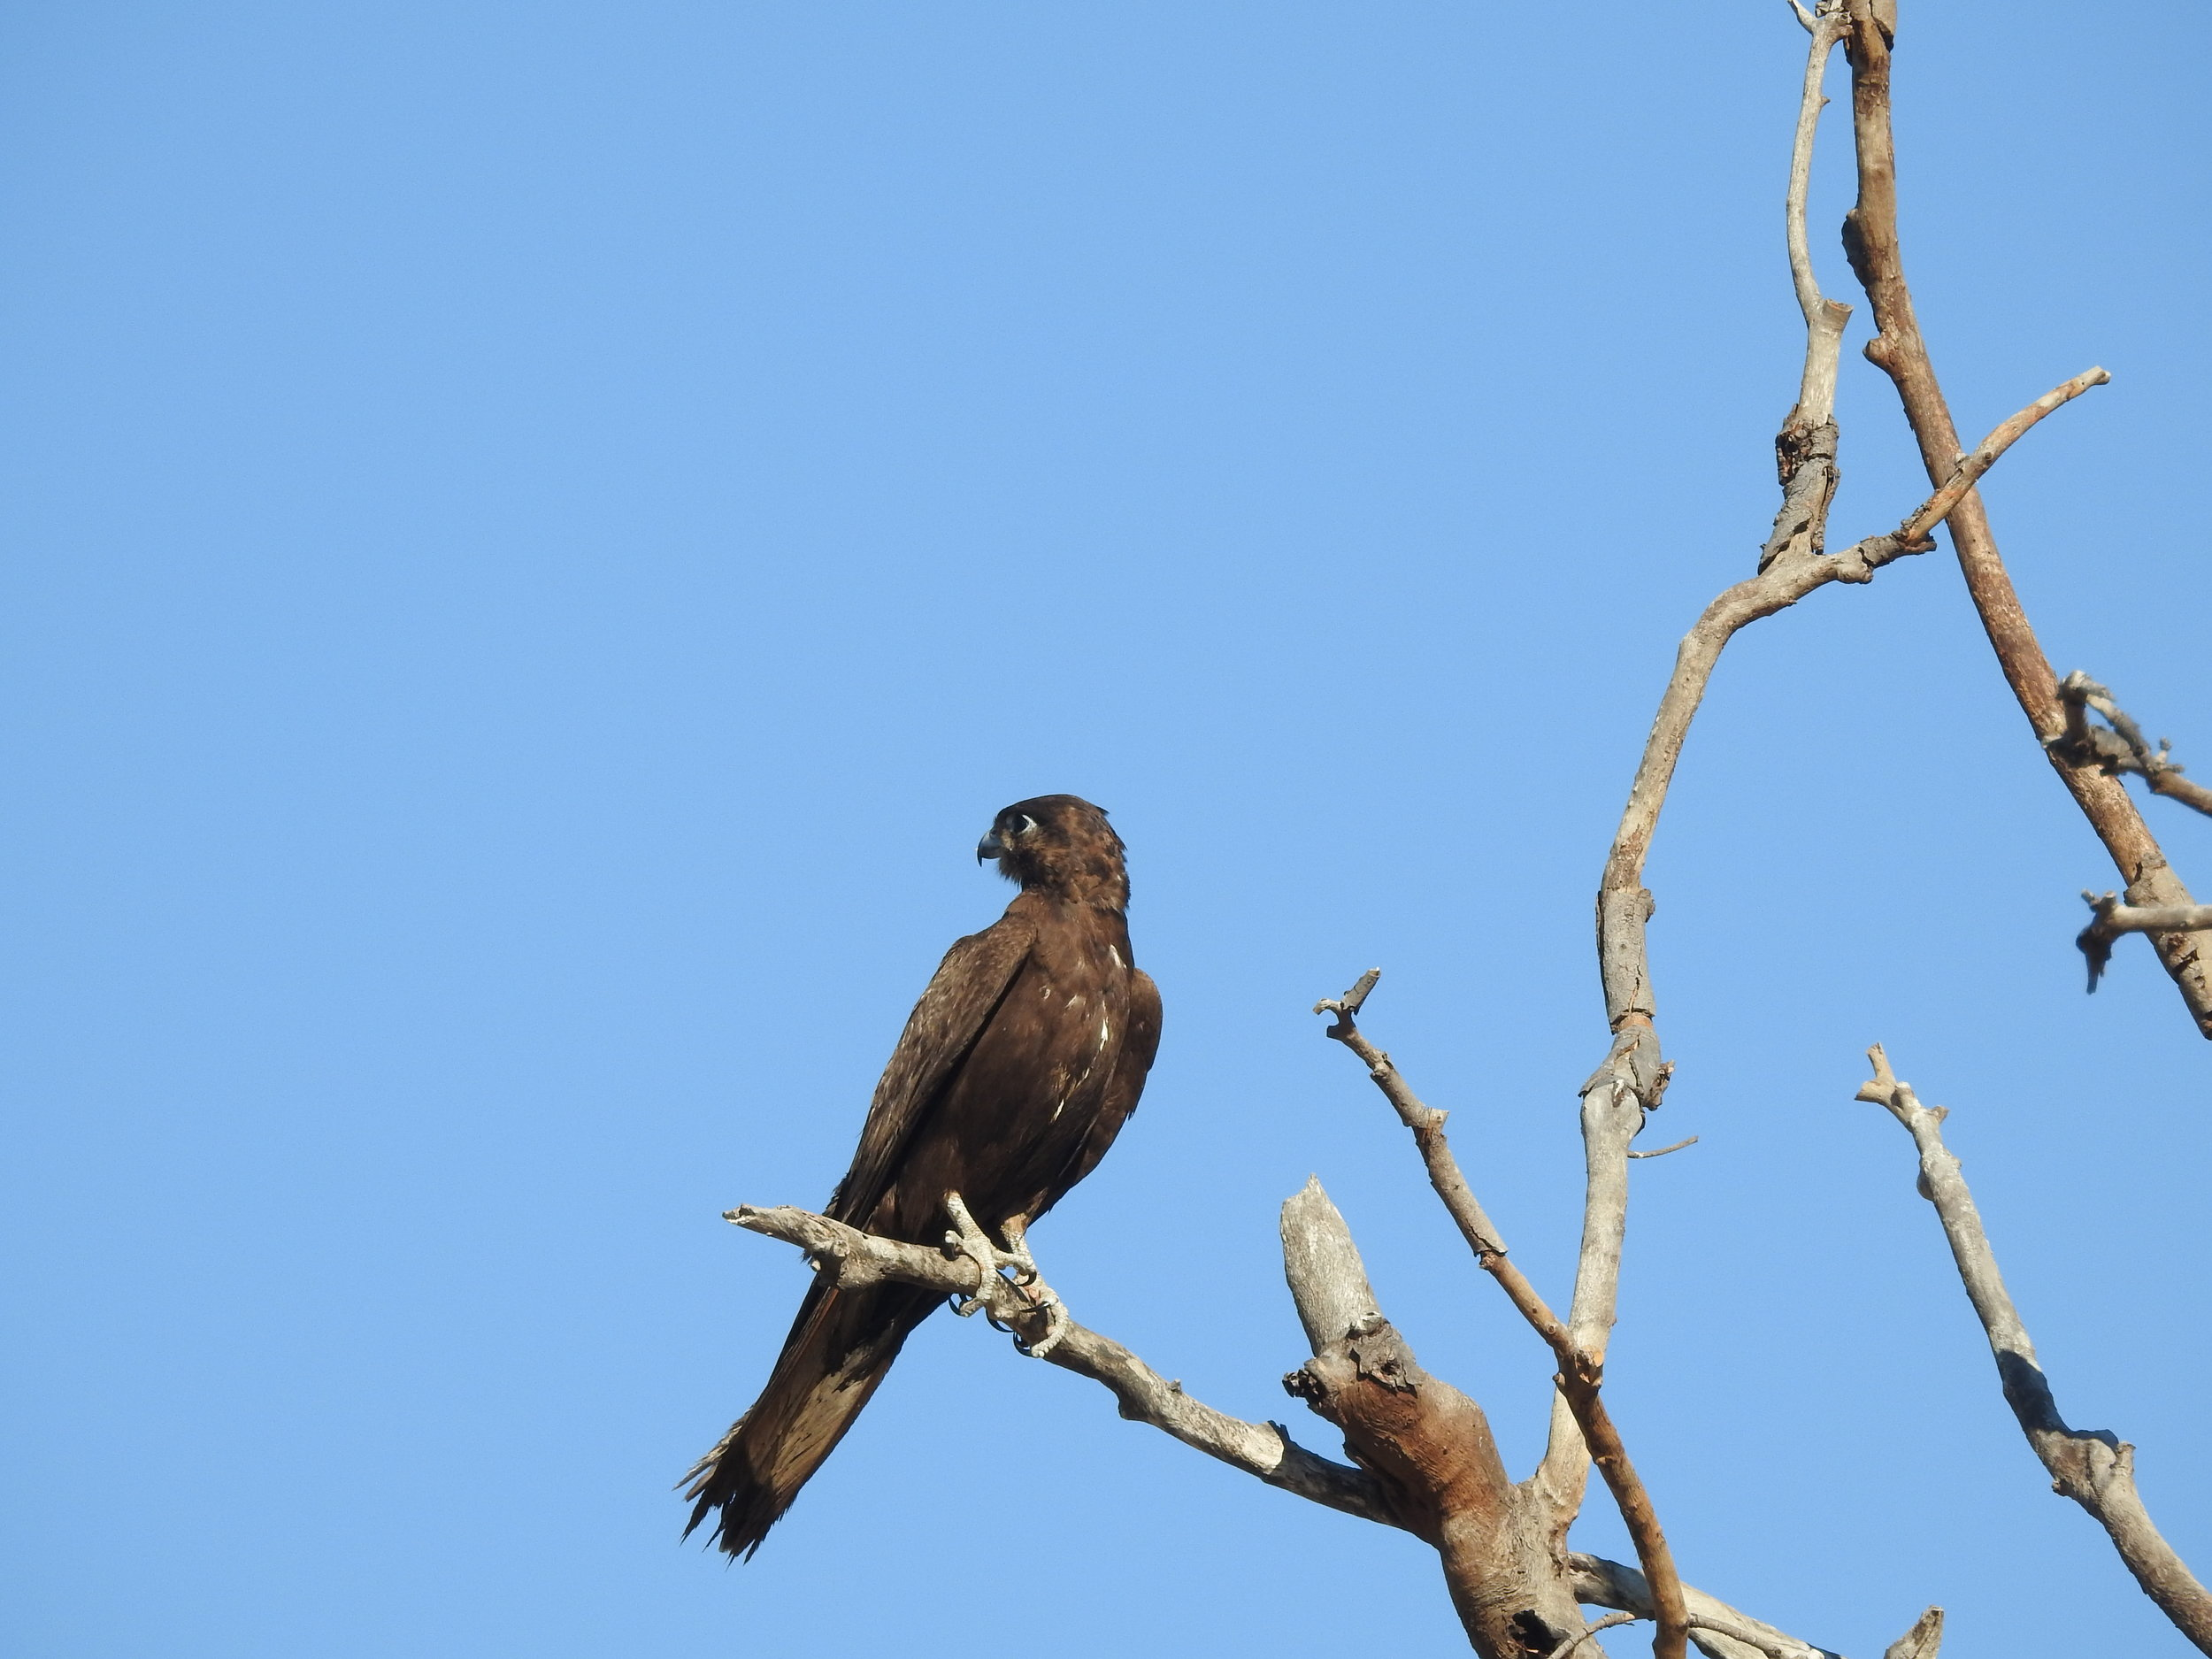 Black Falcon seen at Tagarana Bore (photo: Nyil Khwaja)